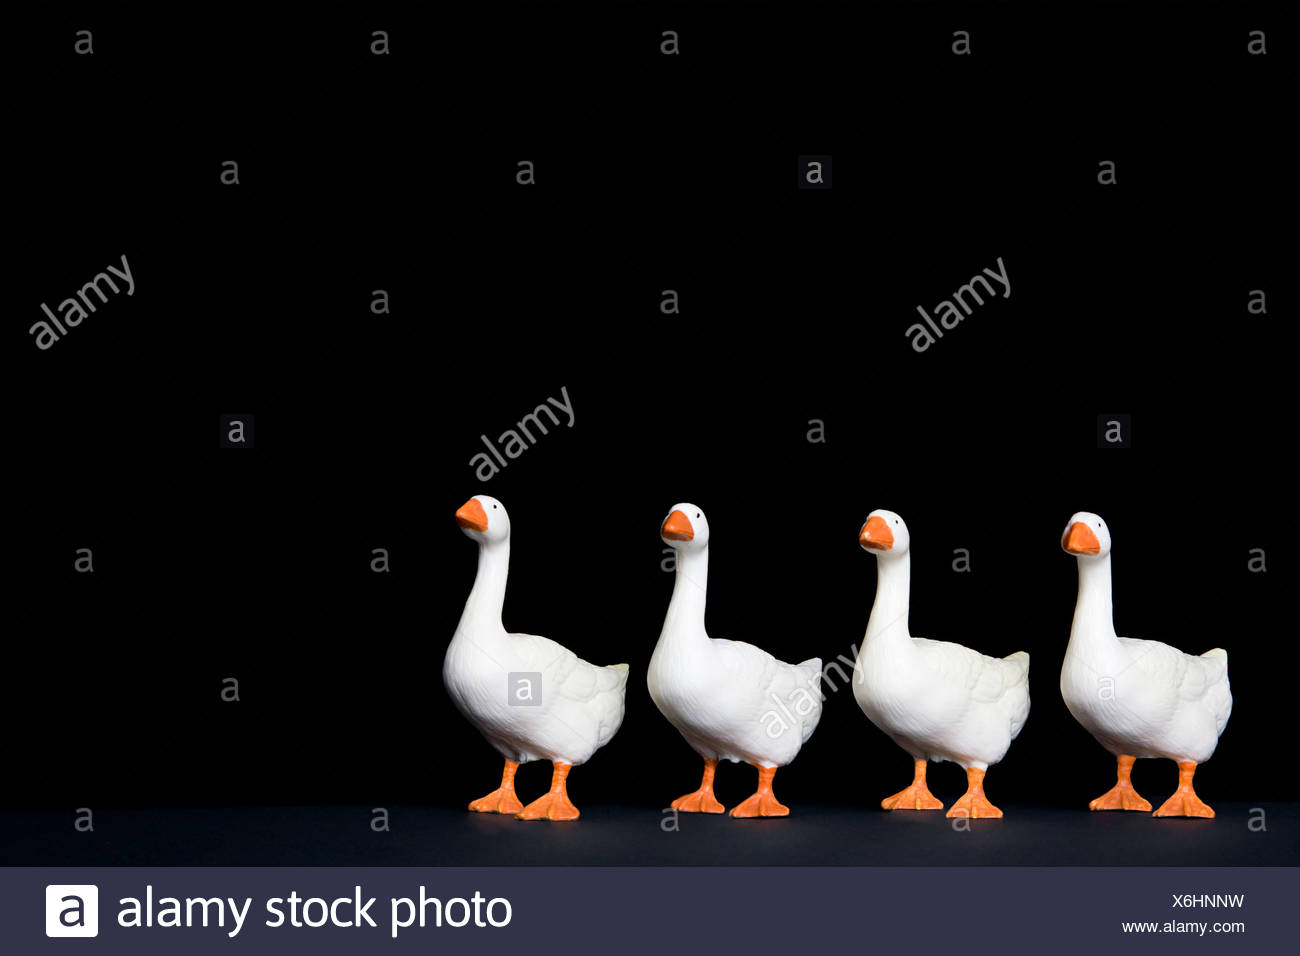 Four toy geese in a row - Stock Image